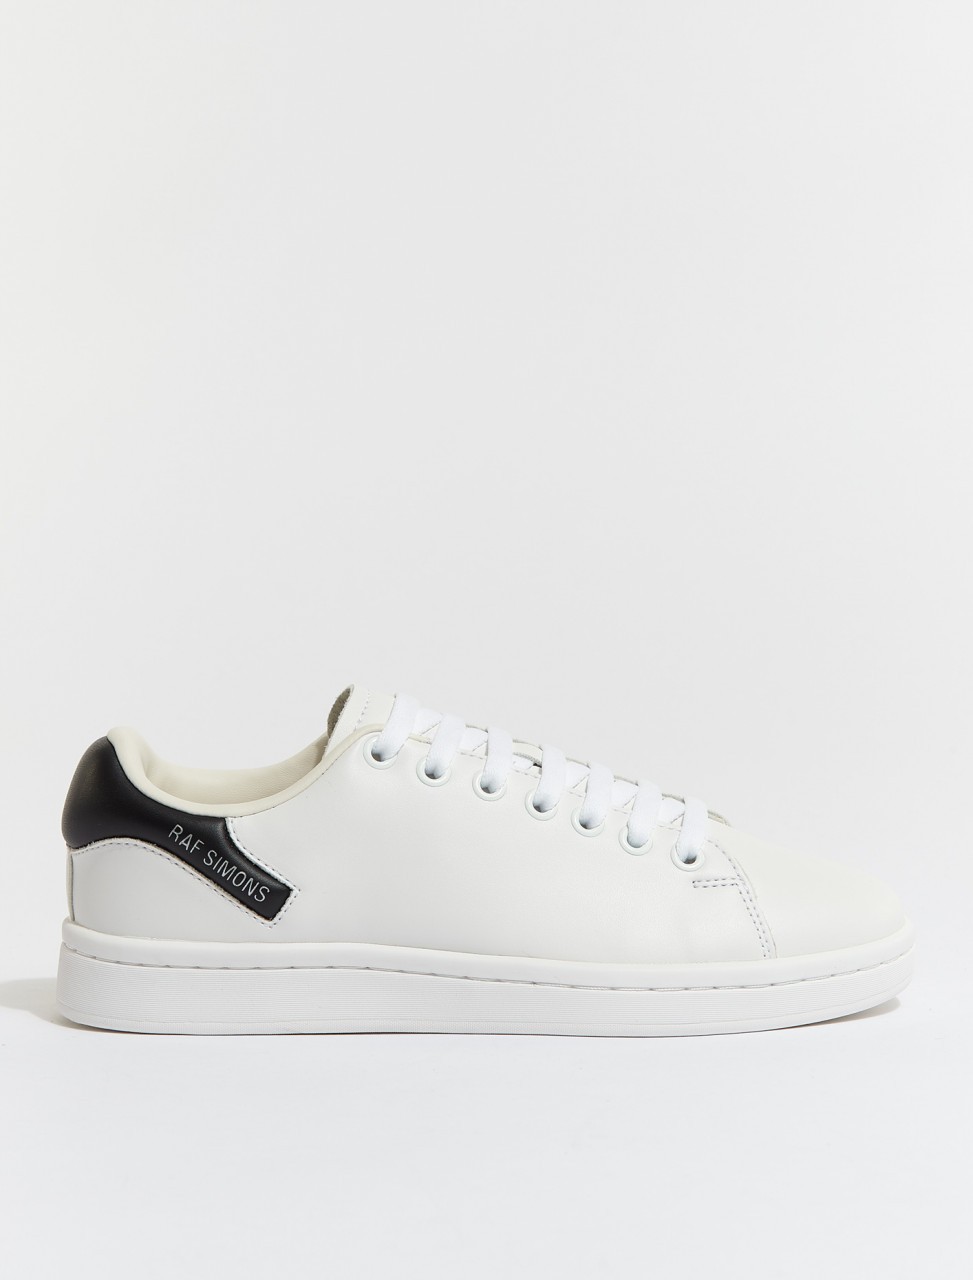 HR760001S-0062 RAF SIMONS RUNNER ORION WHITE BLACK